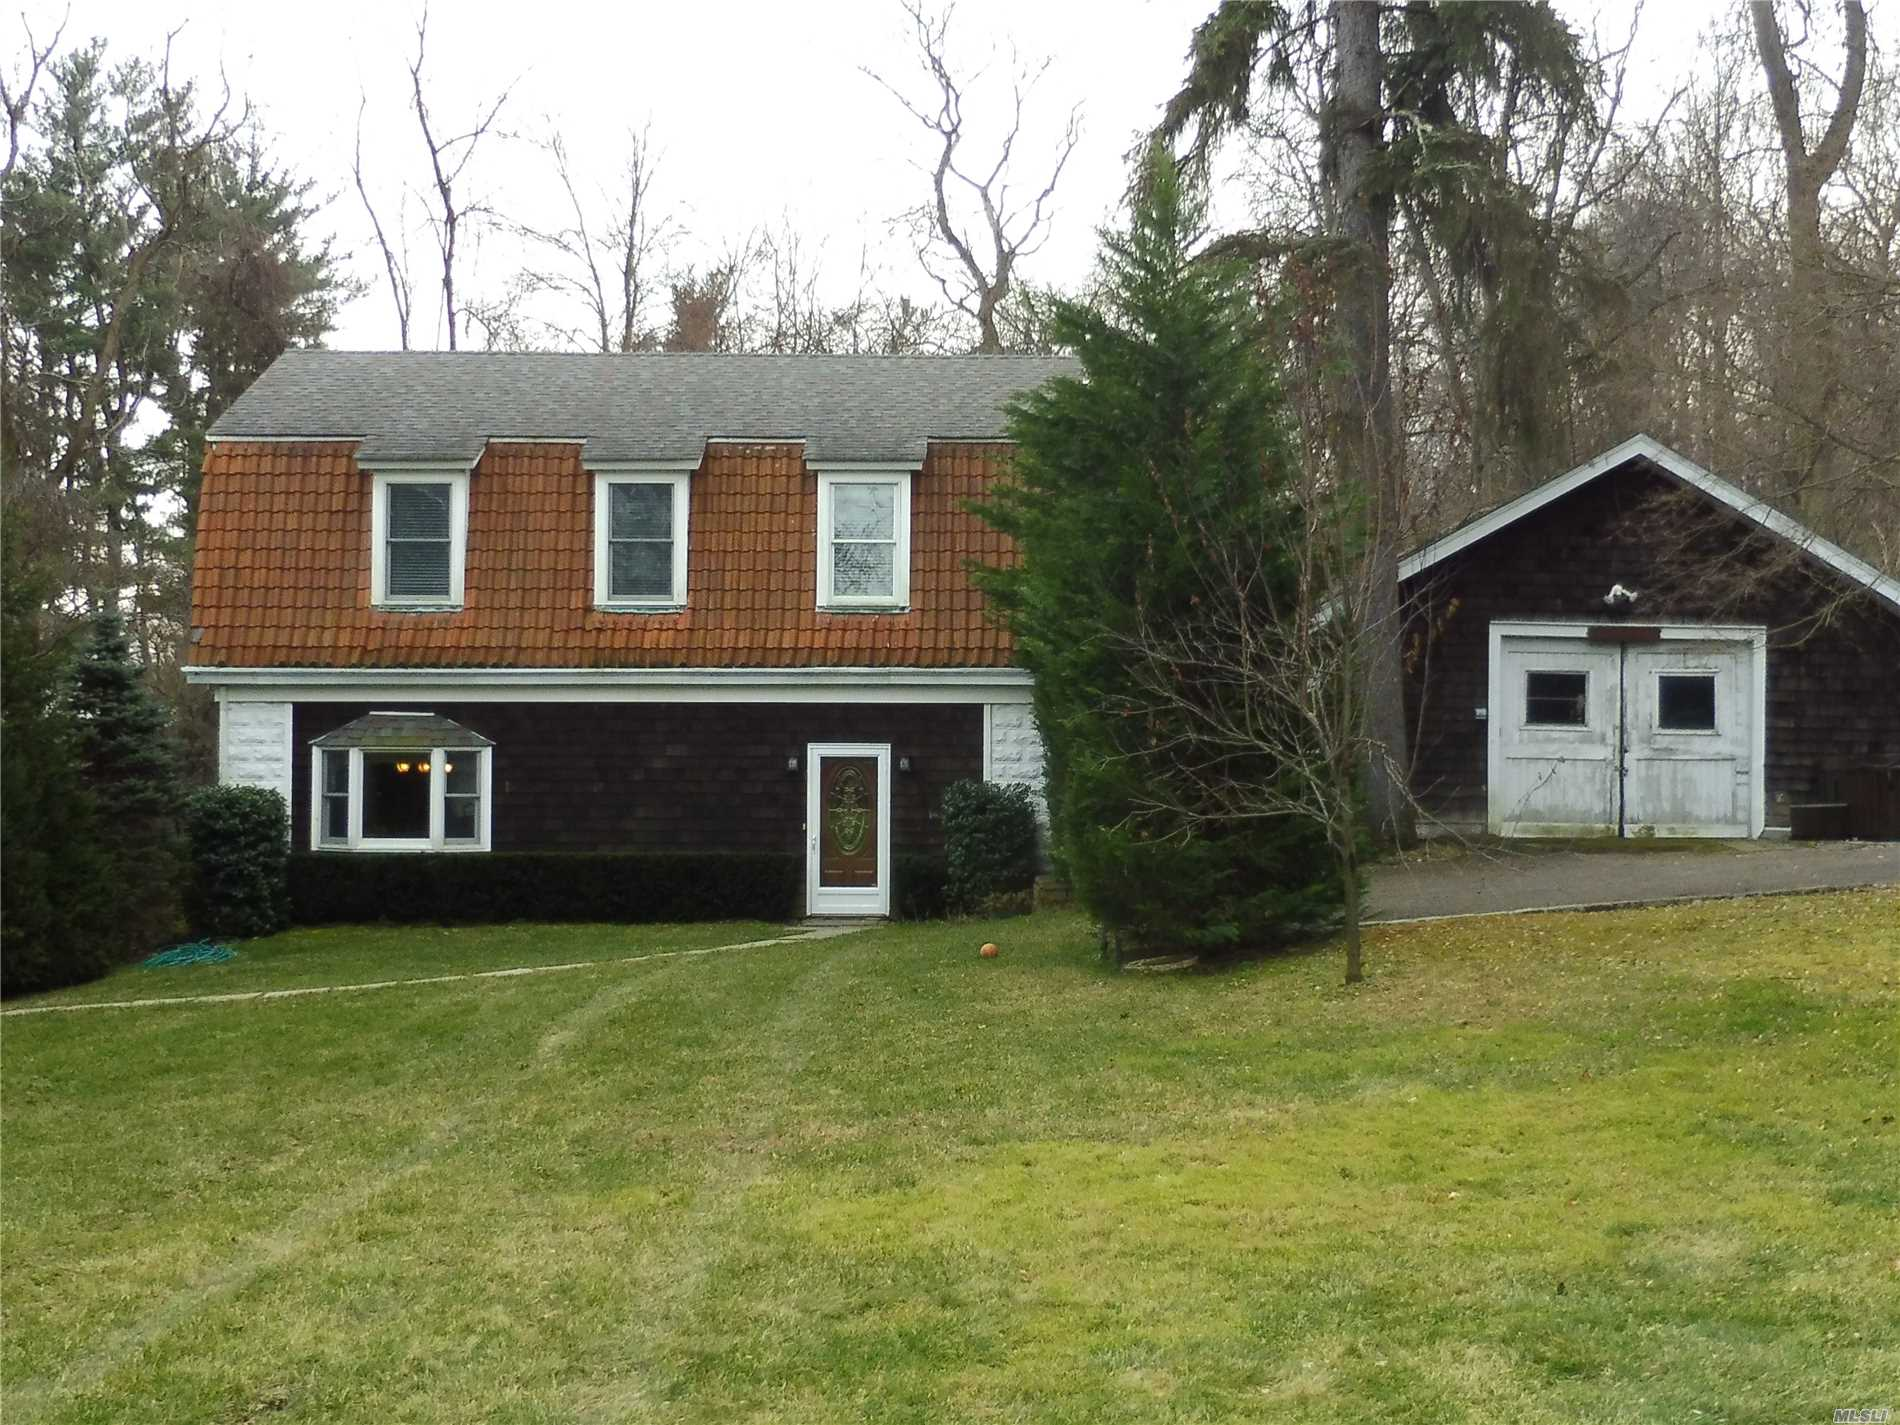 Secluded Location. Long Driveway With Indirect Winter Water Views Leads To Newly Renovated 3 Bedroom 1.5 Bath Colonial On One Acre Of Property. Being Rented For $3, 800 Unfurnished, Or $4, 200 Furnished.